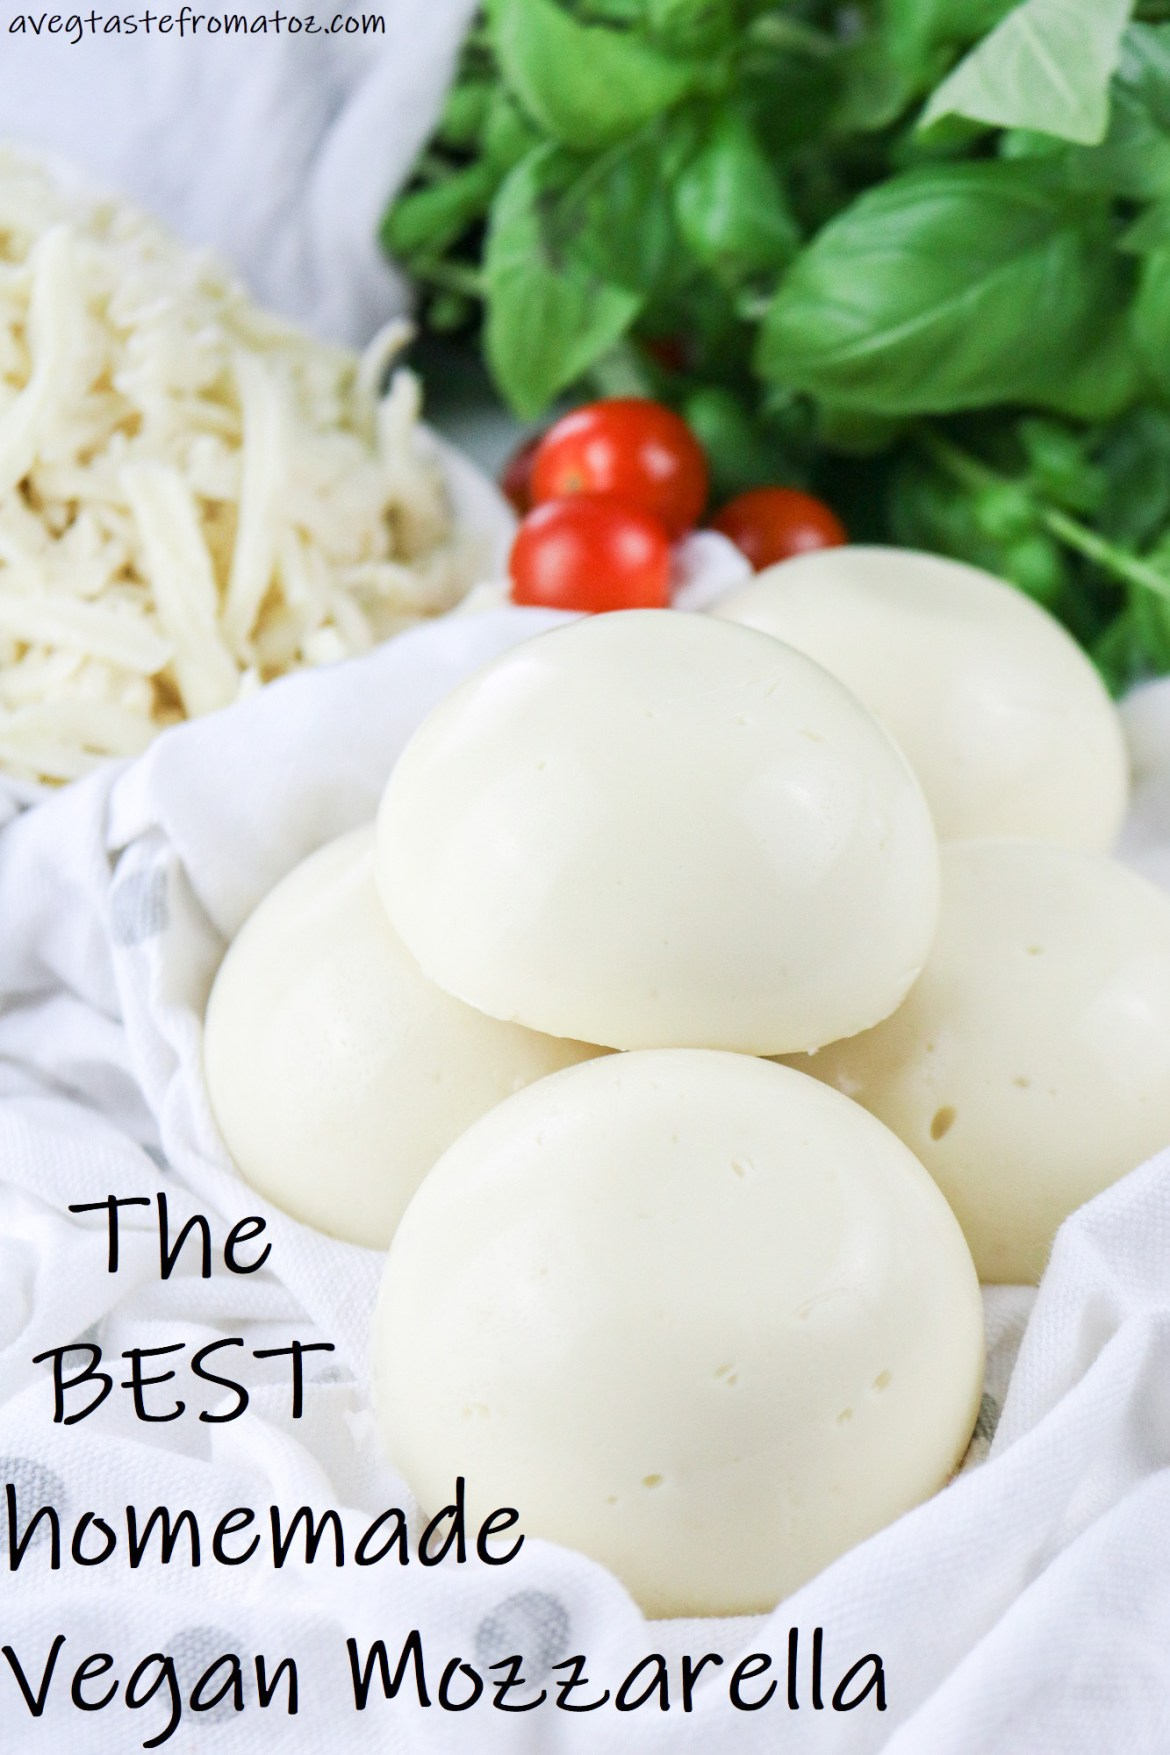 Vegan Mozzarella semi spheres on a white cloth with grey polka dots on a background of grated mozzarella shavings, cherry tomatoes and fresh basil with black text saying the best vegan mozzarella, image to be shared on social networks like pinterest